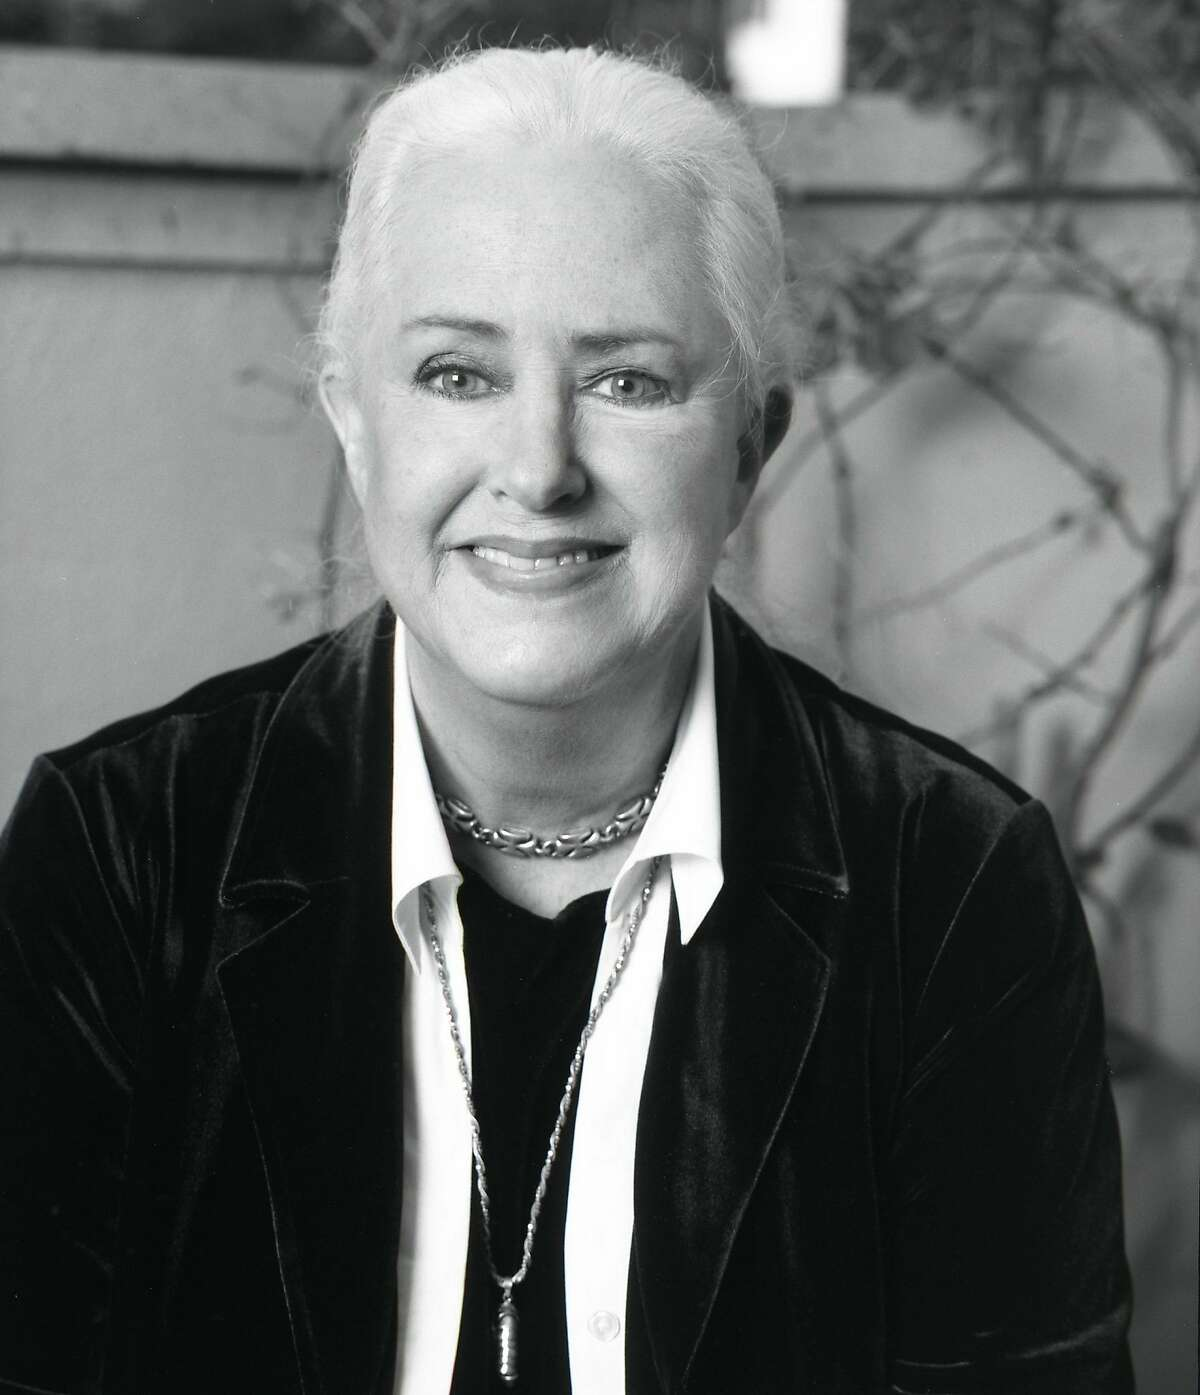 Grace Slick, the former singer of Jefferson Airplane, has found a second career in fine art.